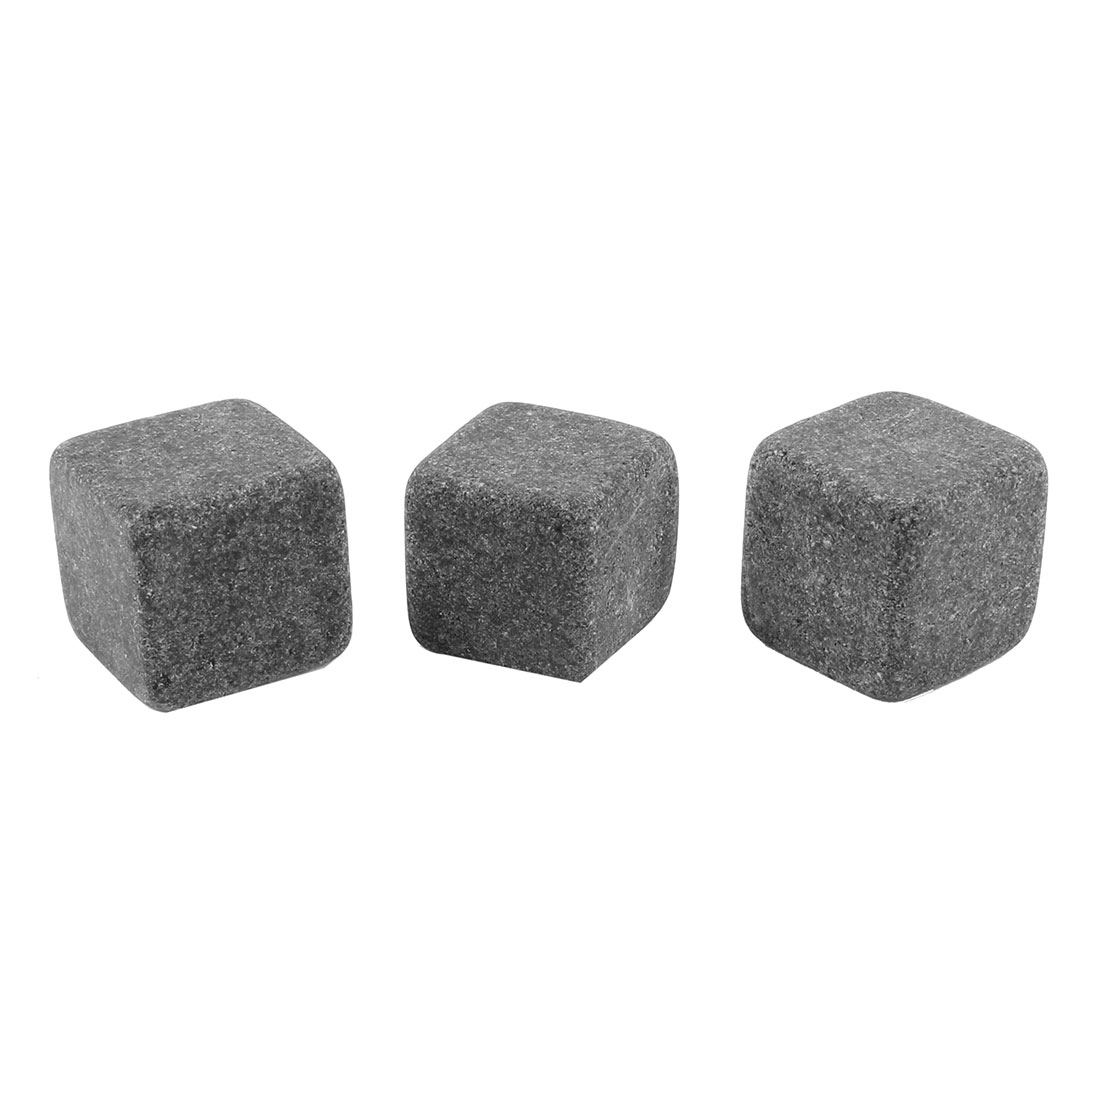 3 Pcs Dark Gray Ceramic Whisky Stones Ice Cube 20mmx20mmx20mm w Drawstring Bag